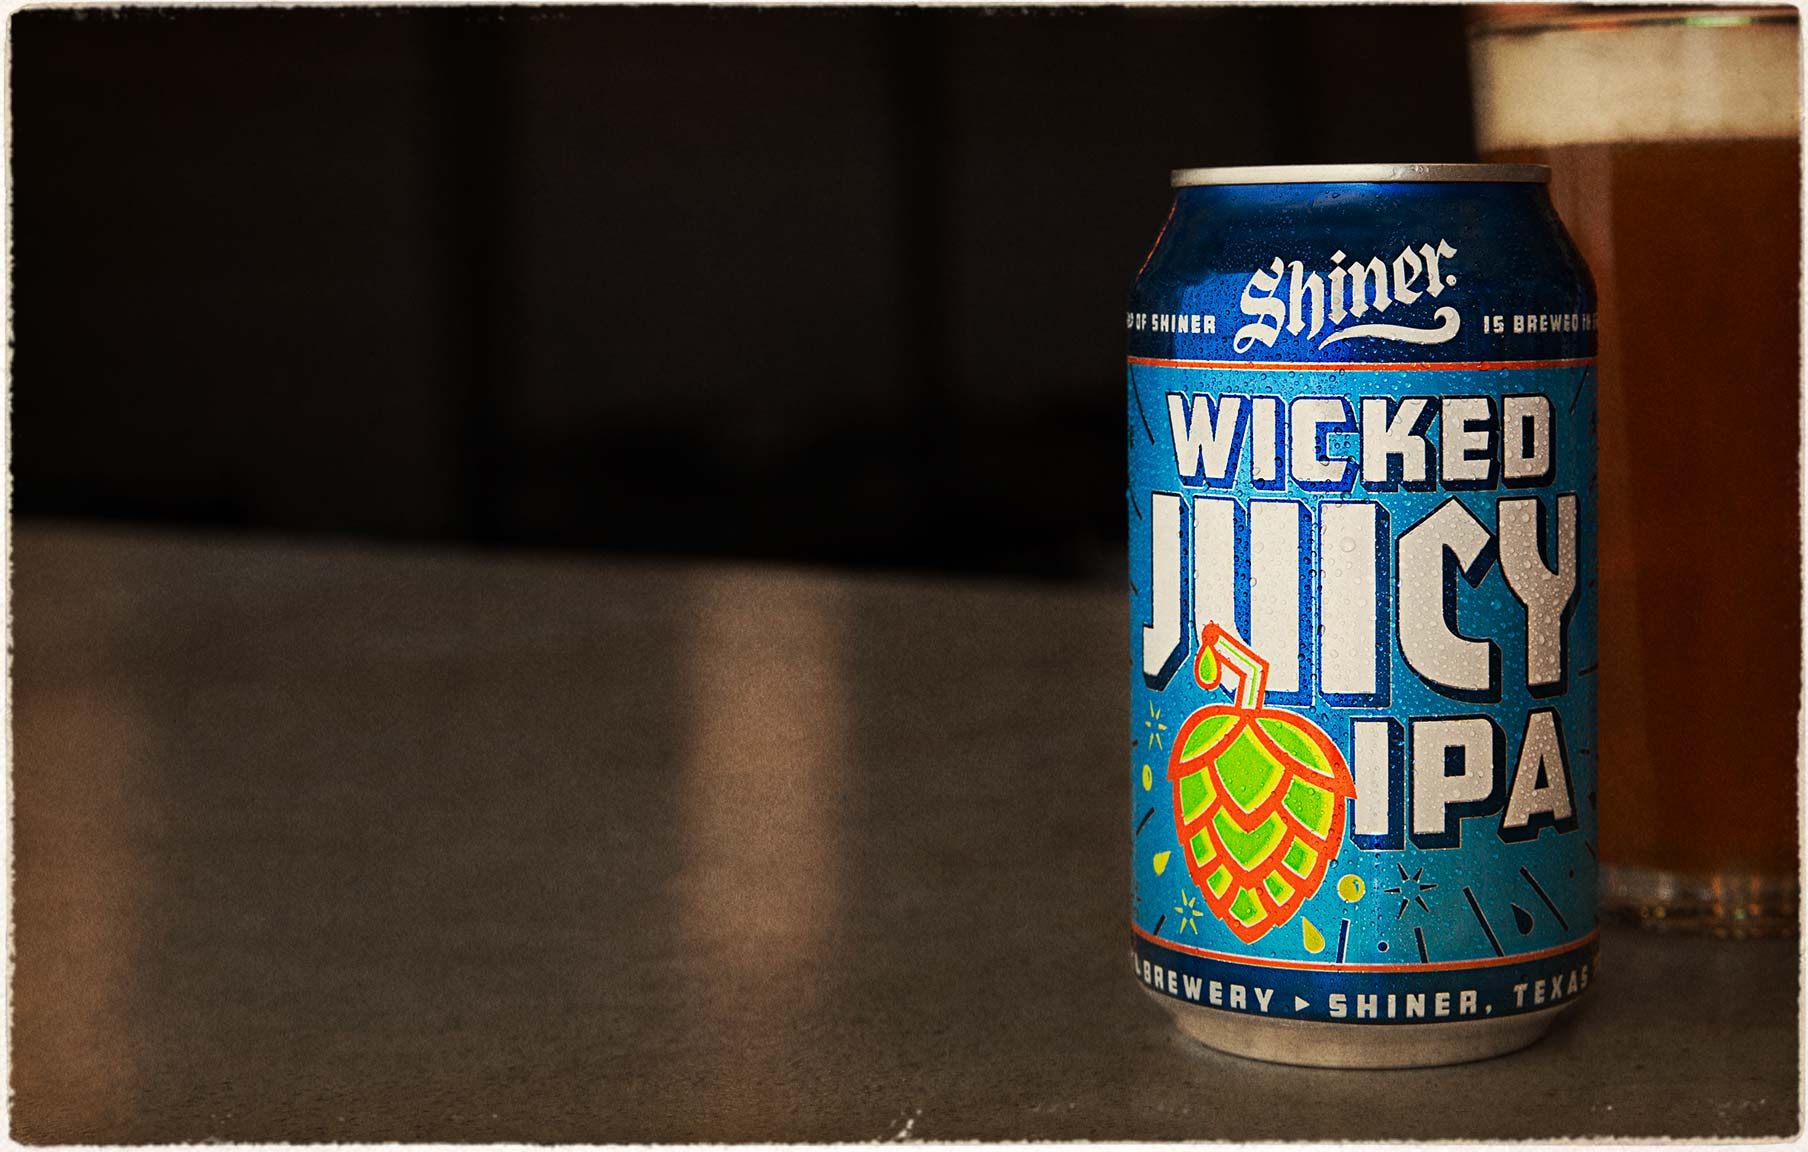 Wicked Juicy IPA